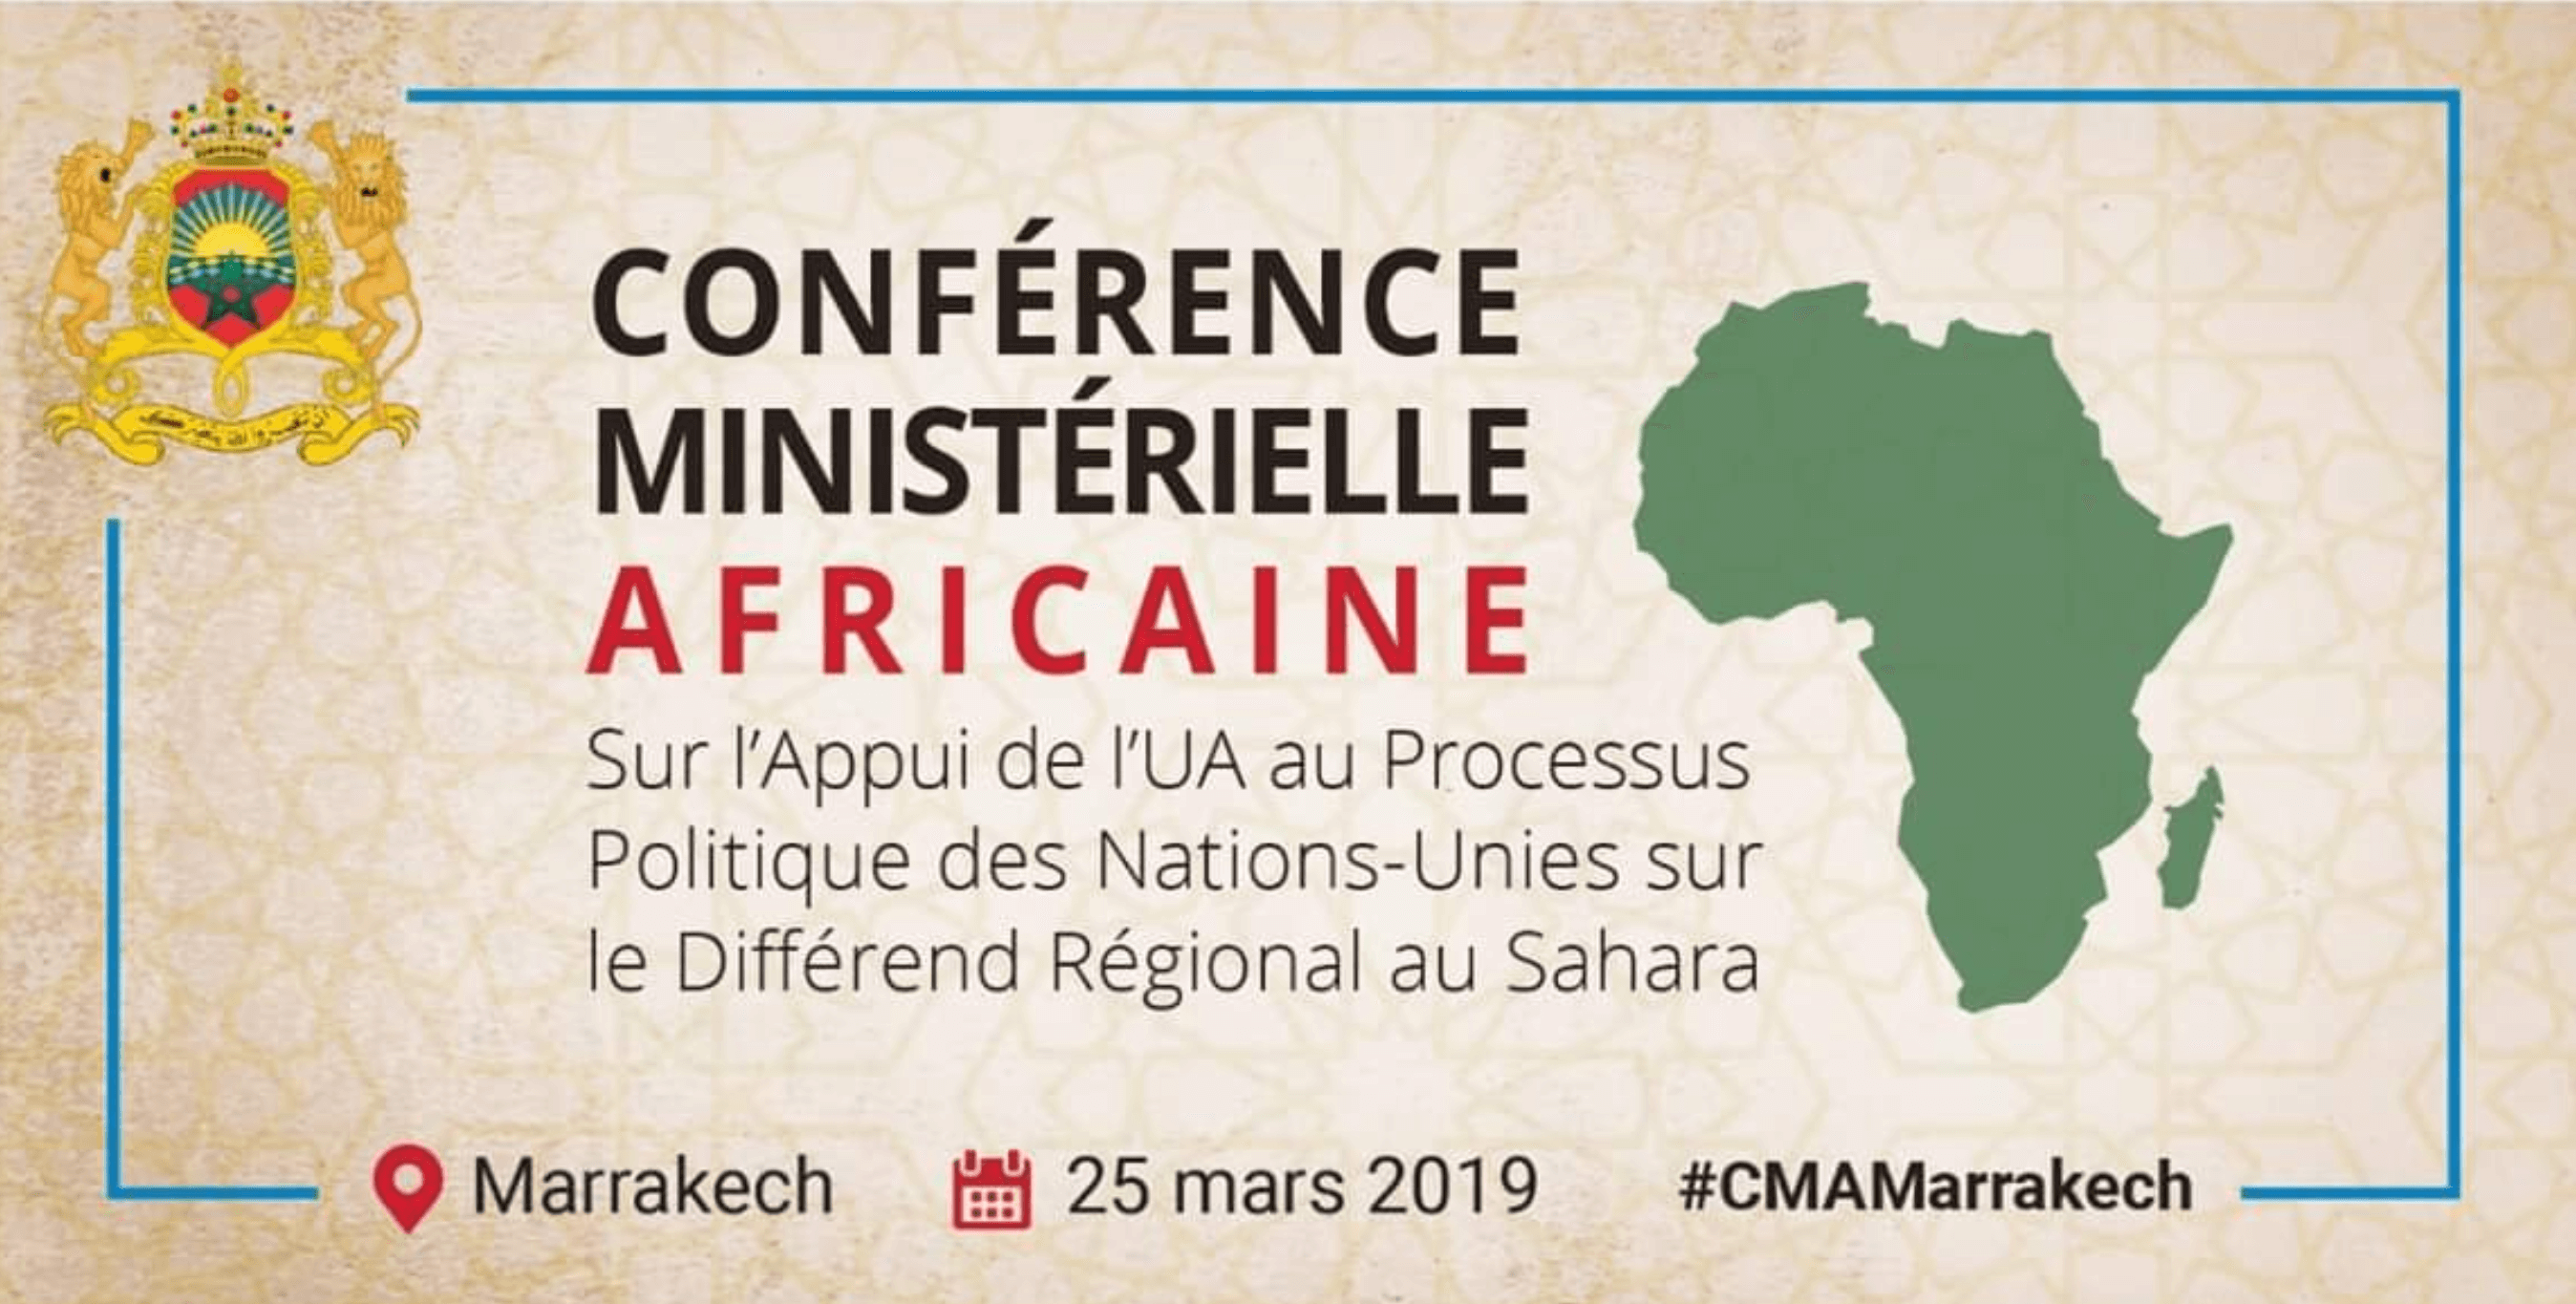 Marrakesh hosts March 25, 2019 the African Ministerial Conference on the support of the African Union to the United Nations political process on the regional dispute in the Sahara.